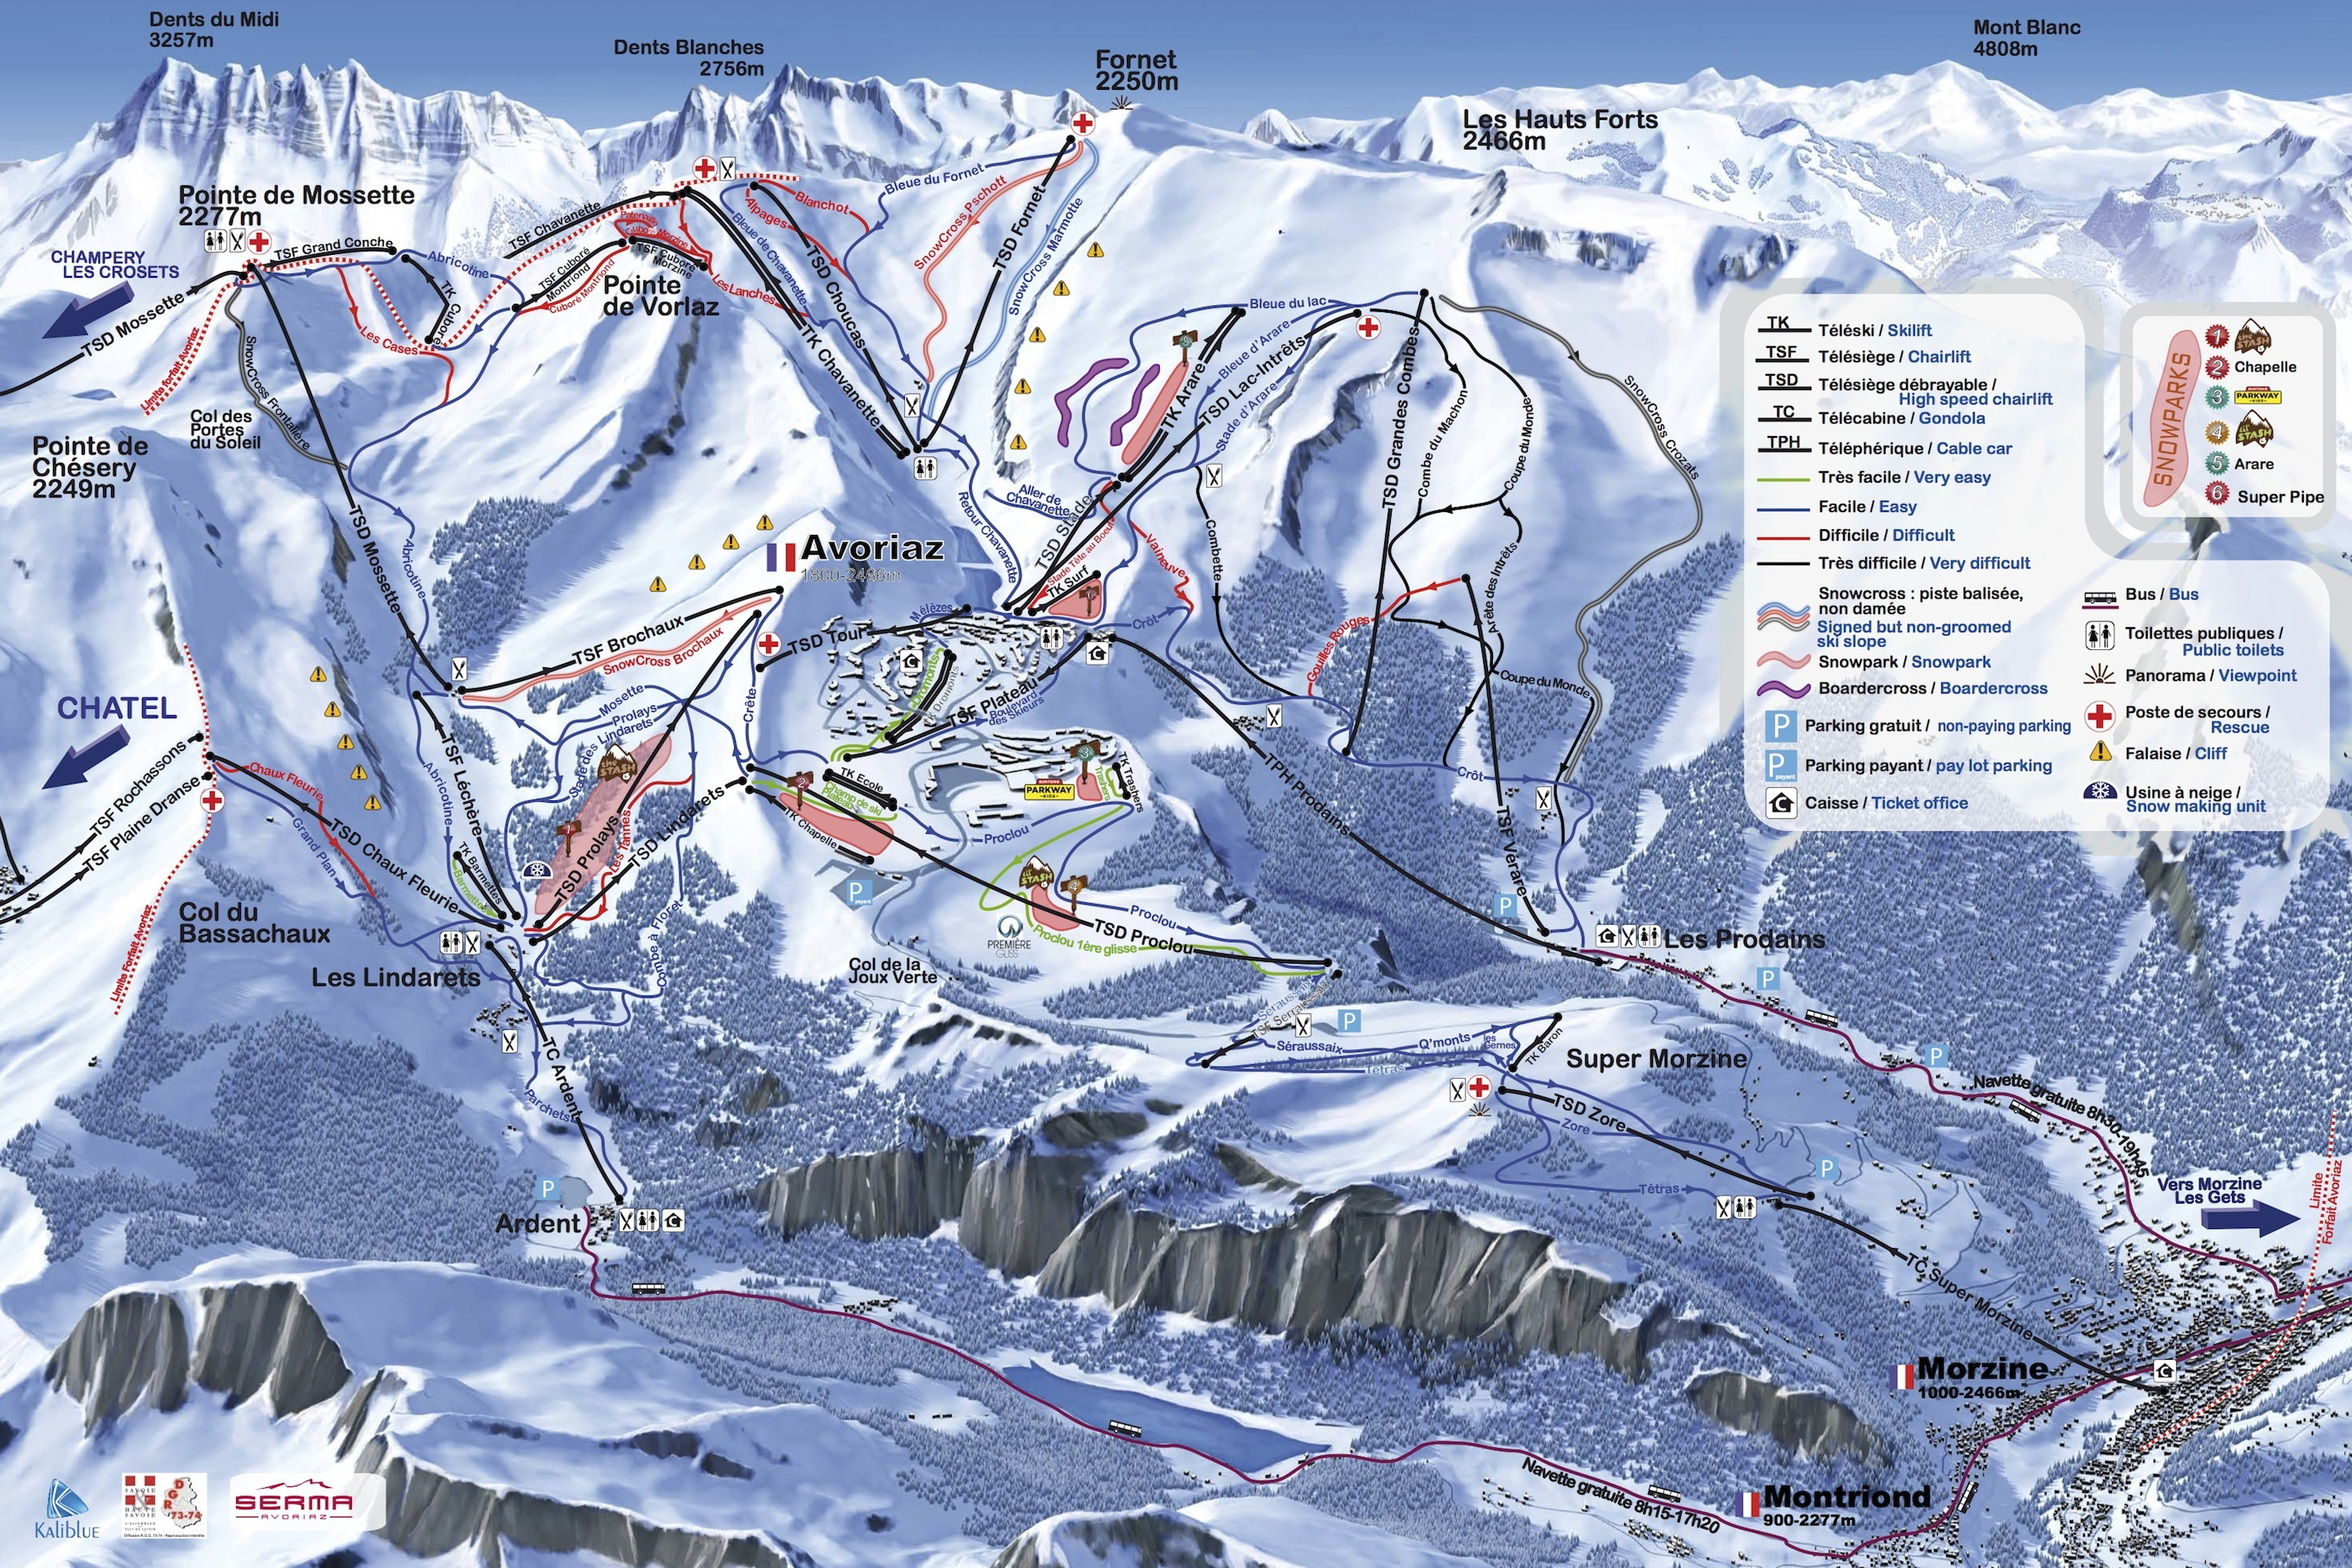 Avoriaz Ski Map Avoriaz Piste Map | Plan of ski slopes and lifts | OnTheSnow